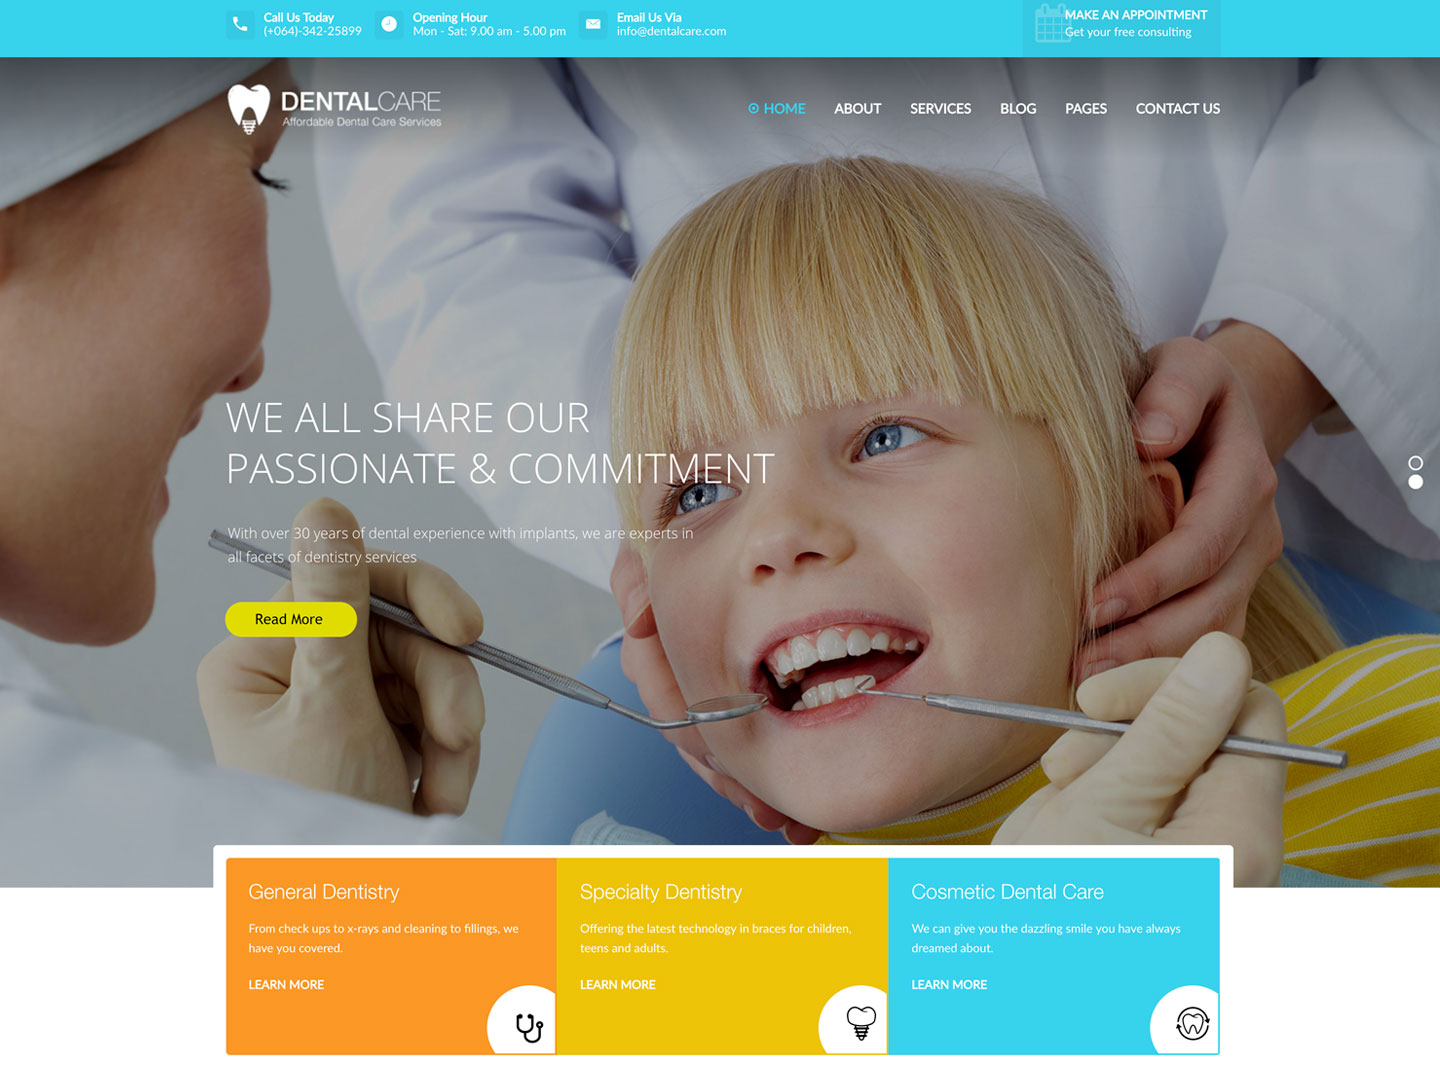 exemple de site internet dentiste 2